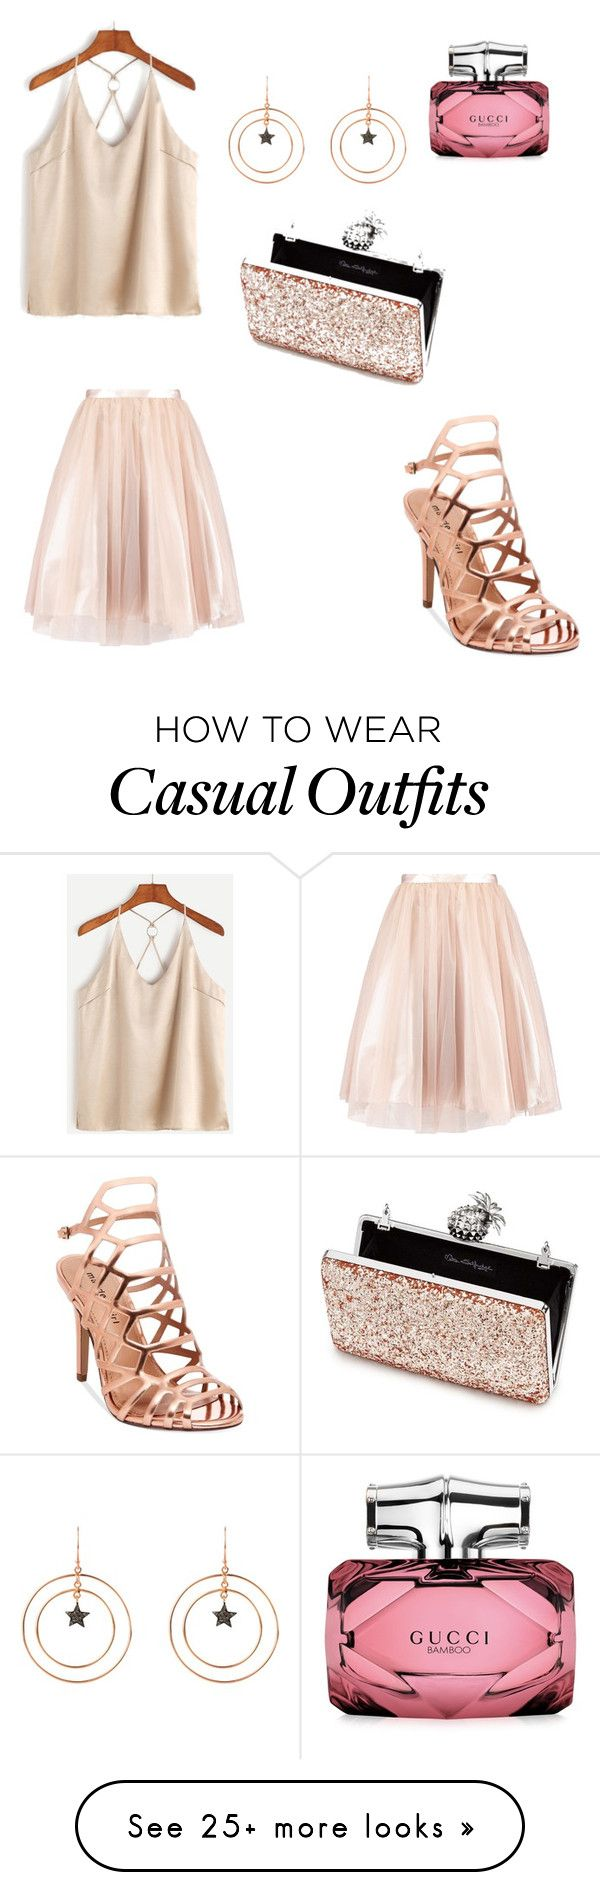 explore casual outfits